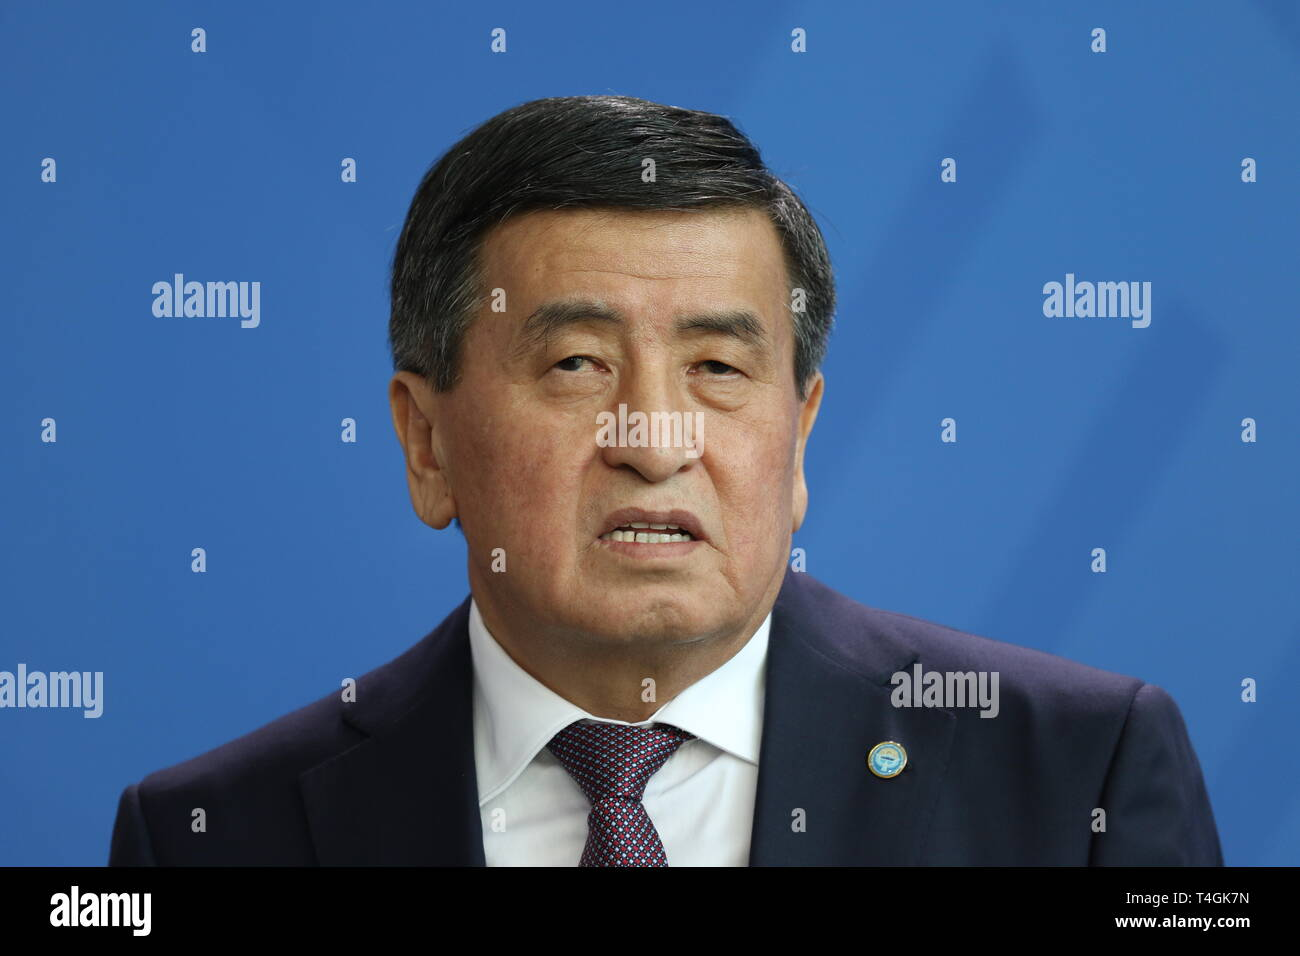 16.04.2019, Berlin, Germany, the Kyrgyz President, Sooronbaj Dshejenbekow in statements to the press in the Chancellery. - Stock Image